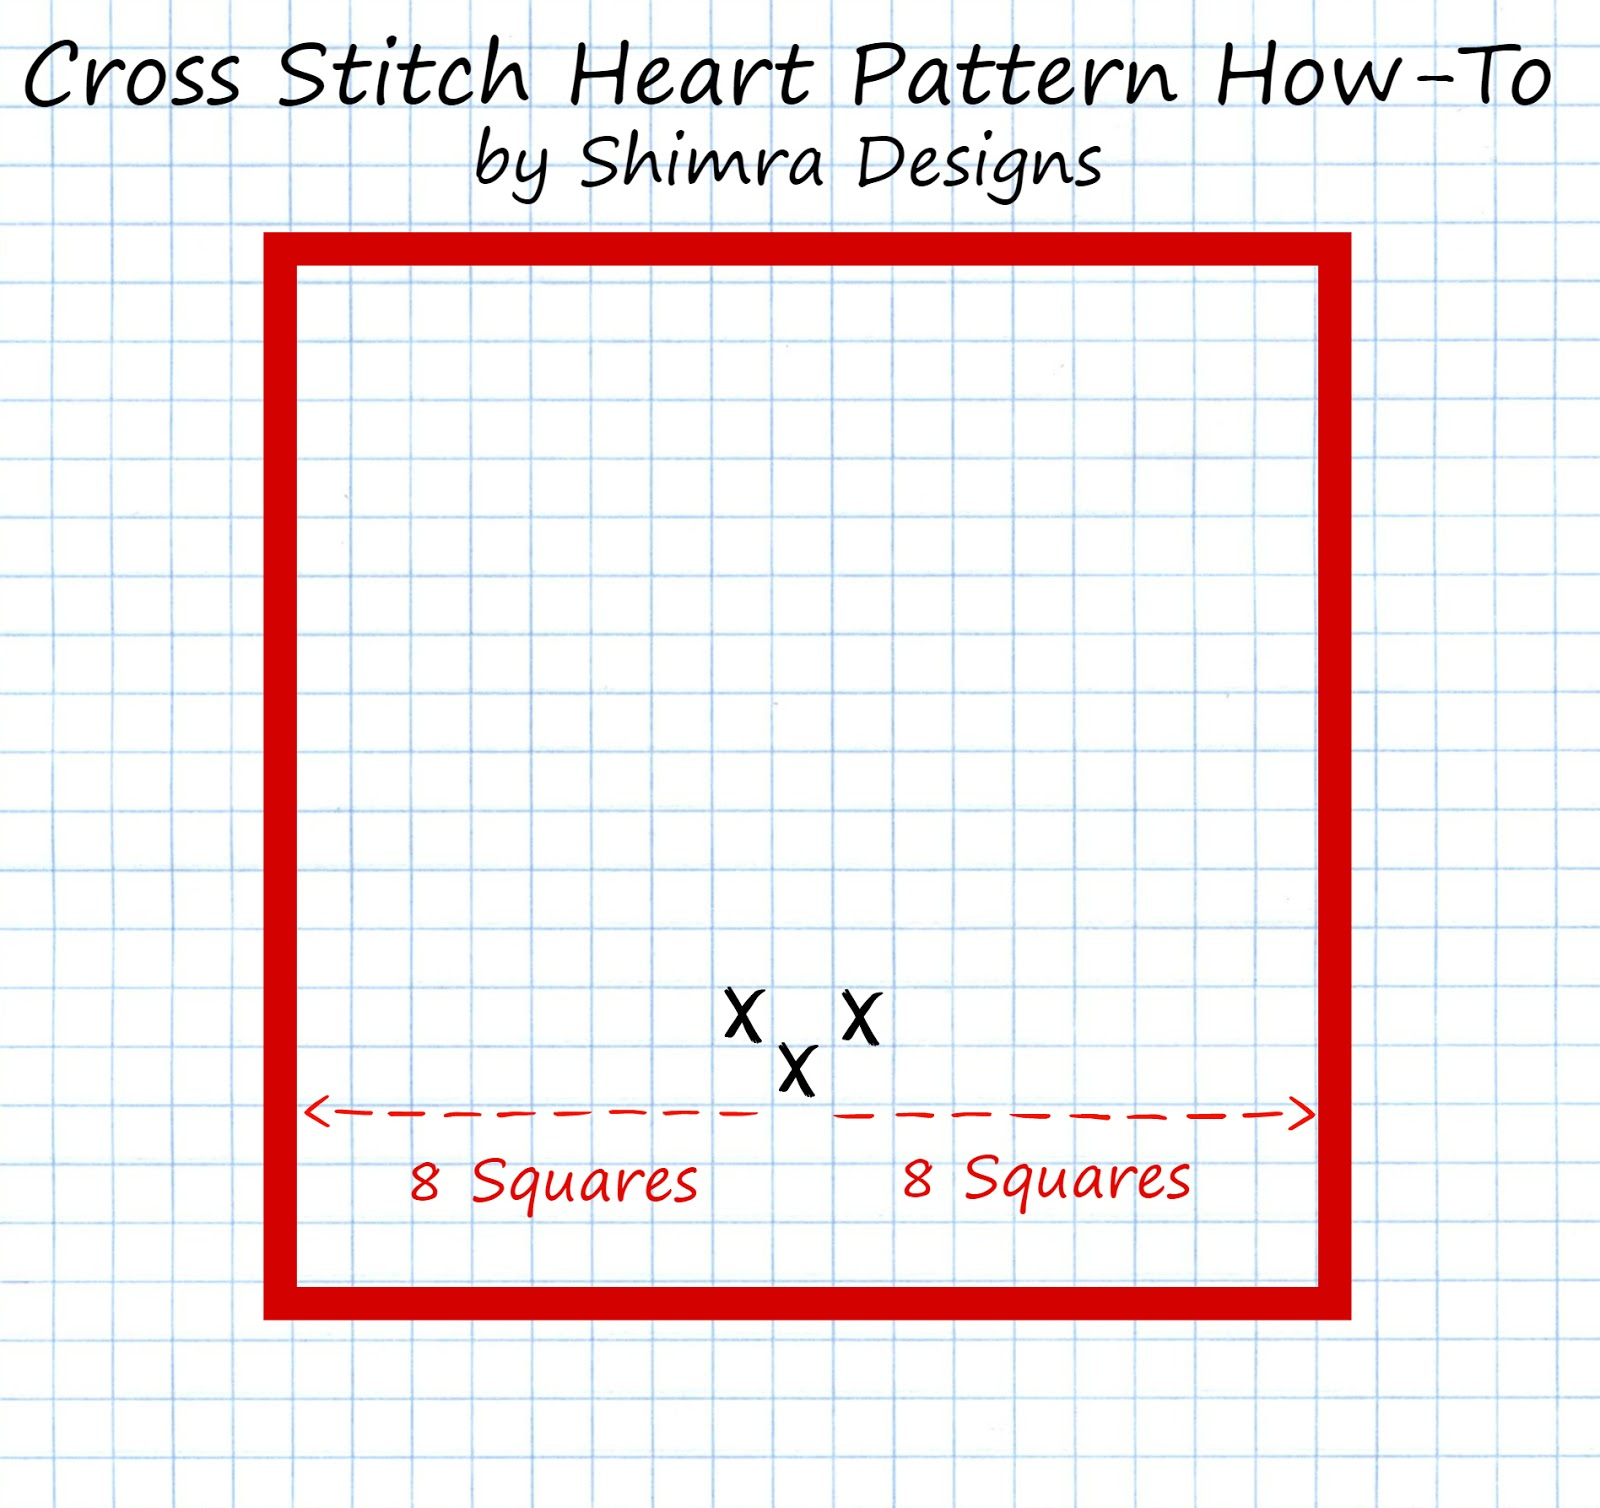 Shimra Designs: Tutorial: How to make your own Cross Stitch pattern